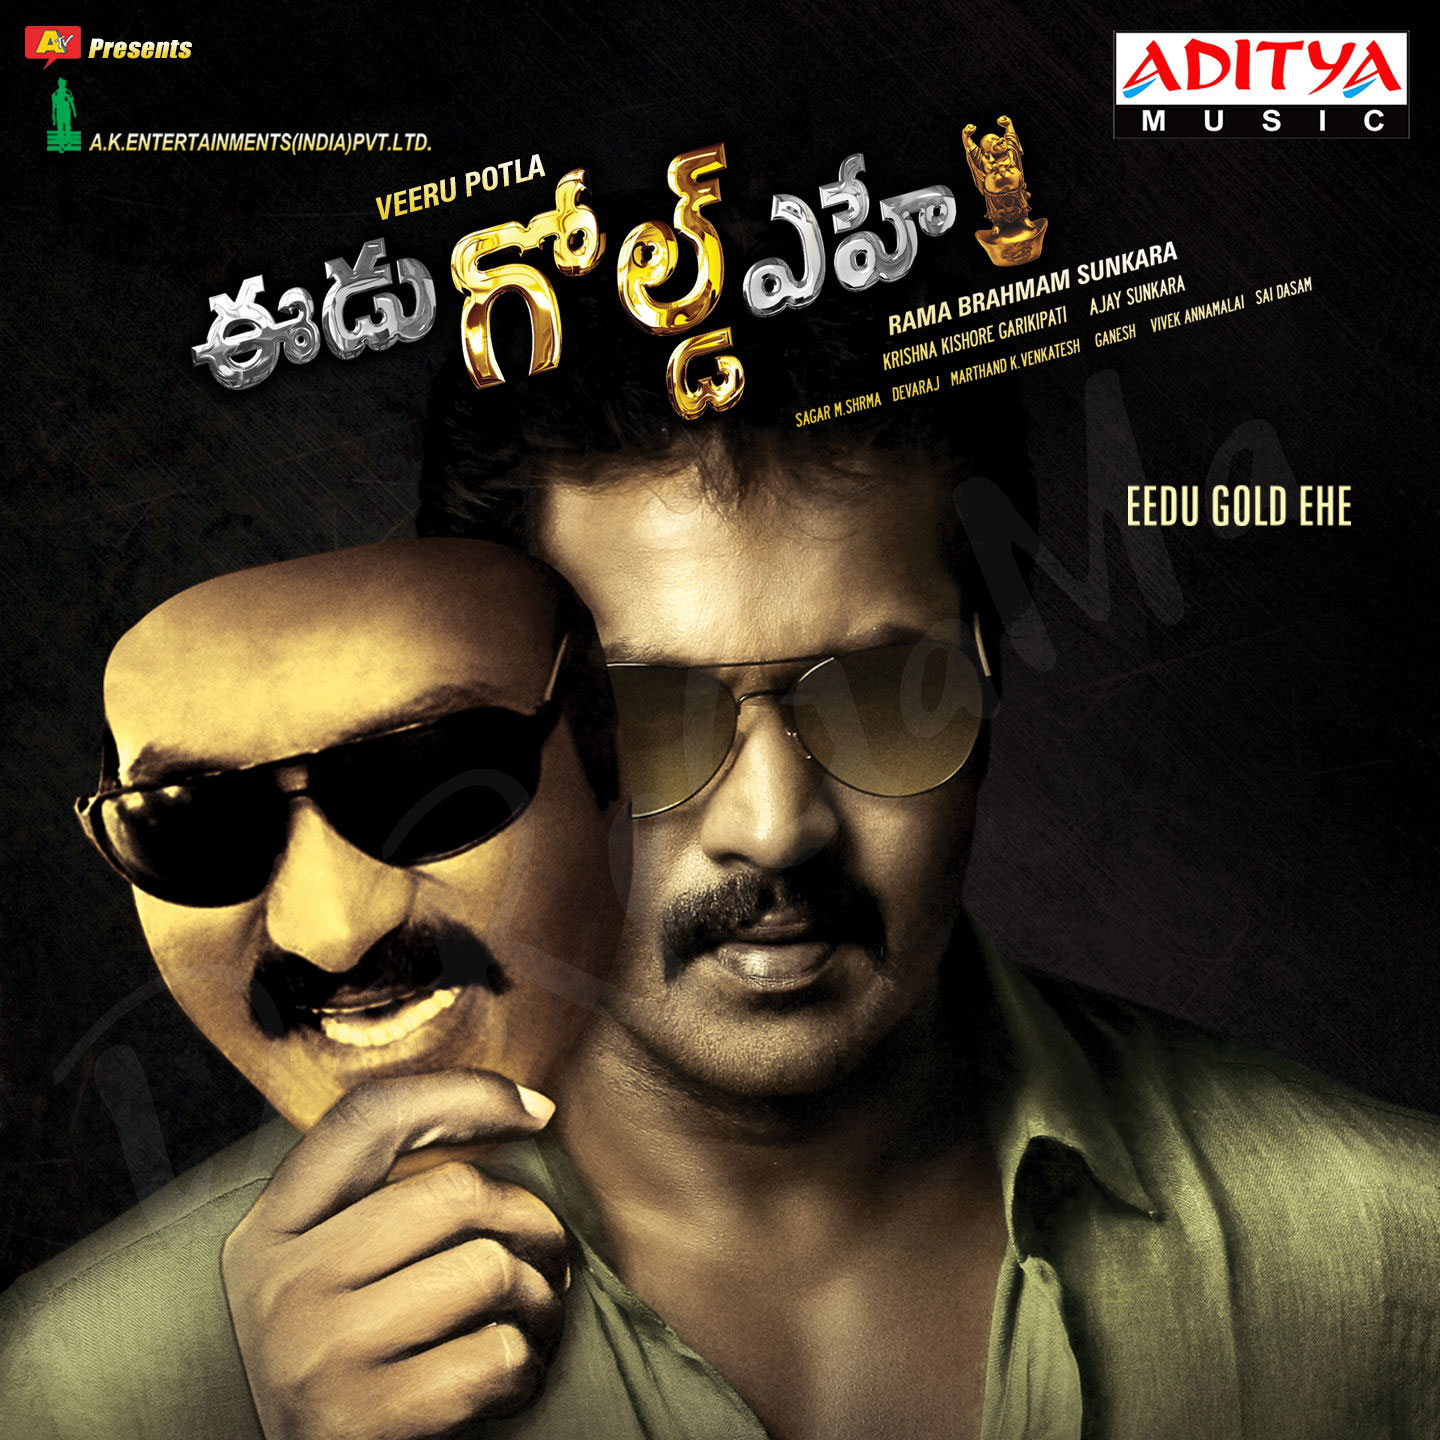 Sunil-Eedu-Gold-Ehe-2016-Telugu-Movie-CD-Front-Cover-Poster-Wallpaper-HD